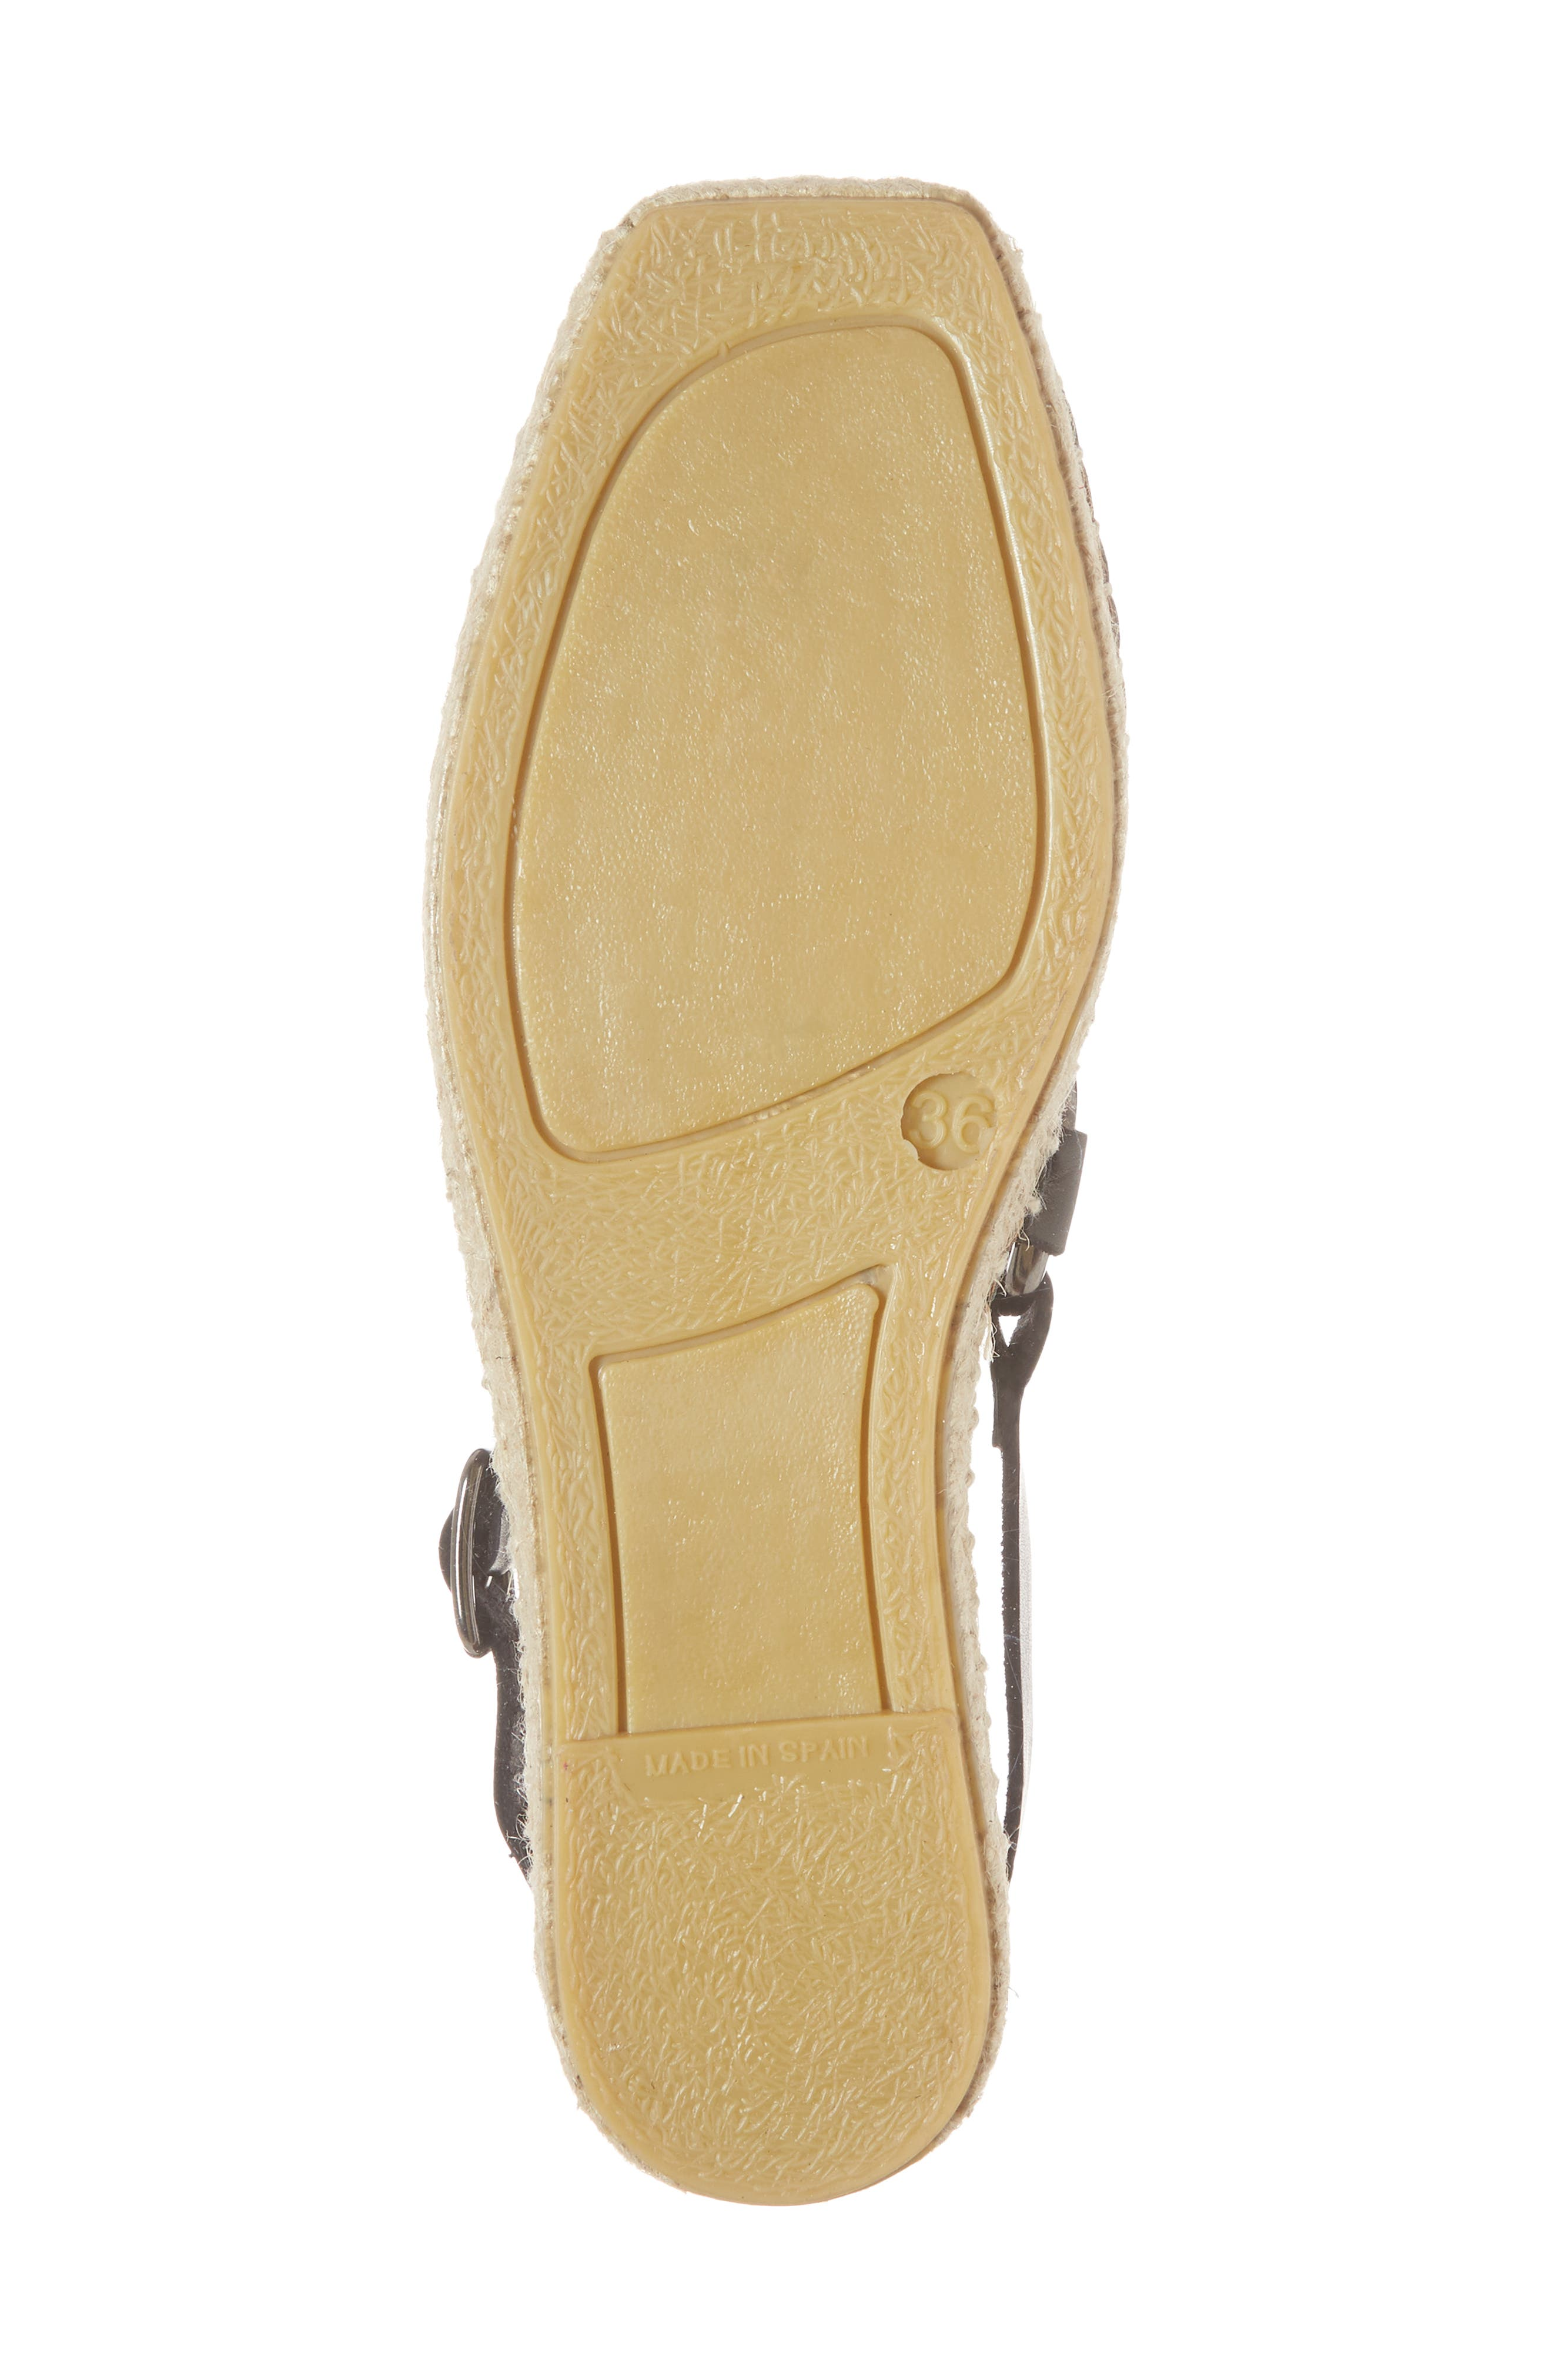 FREE PEOPLE,                             Cabo Espadrille Flat,                             Alternate thumbnail 6, color,                             001